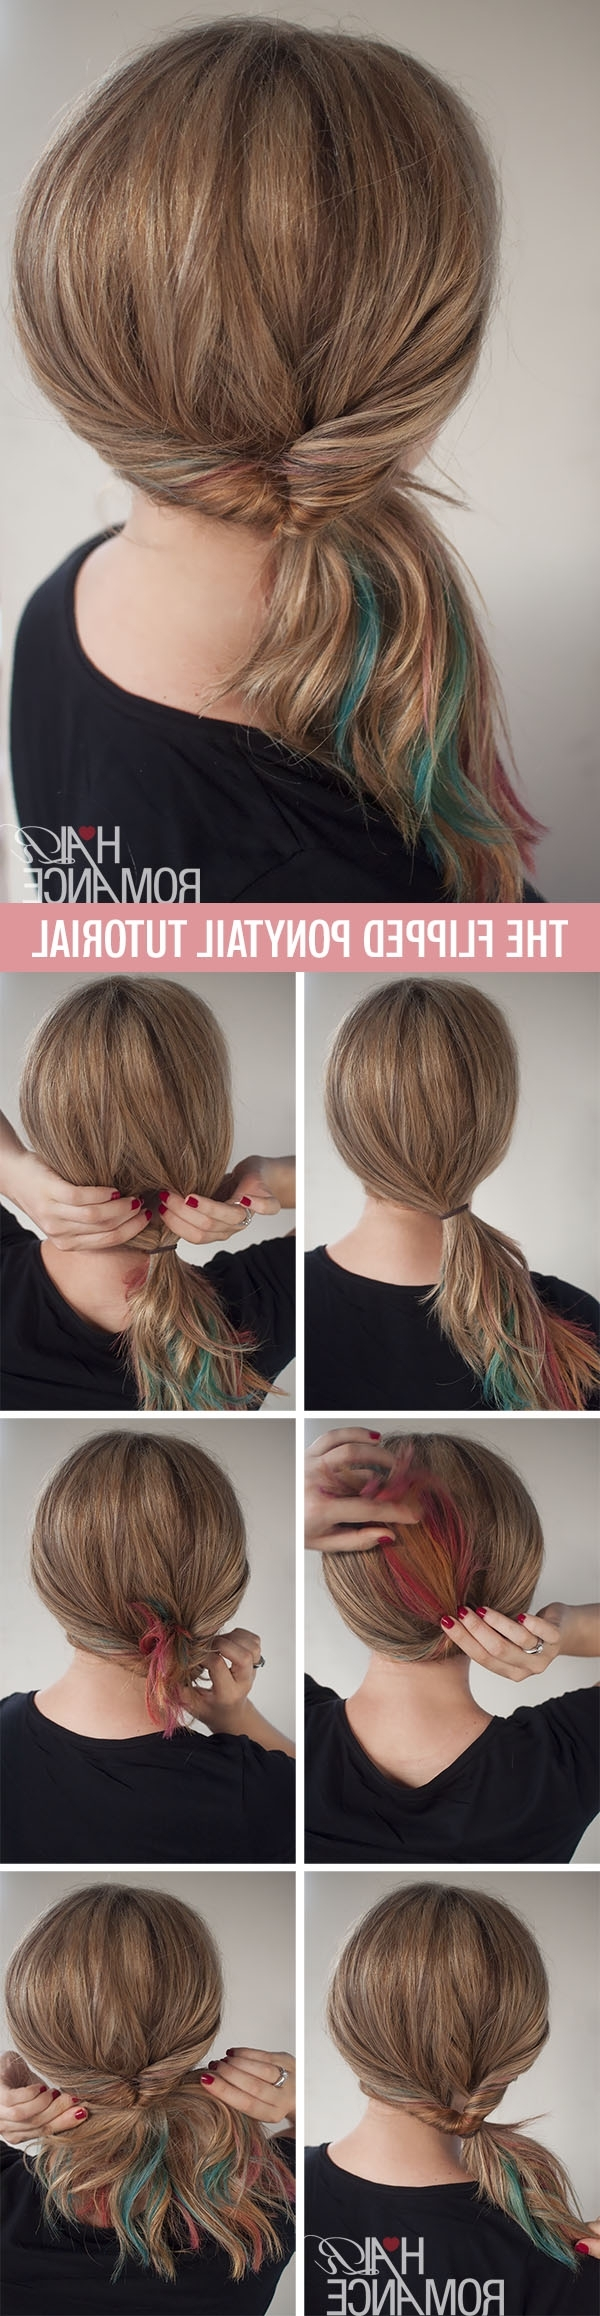 Newest 2 Minute Side Pony Hairstyles In Get Cute Hair In Less Than 1 Minute – The Flipped Ponytail Hairstyle (View 15 of 20)